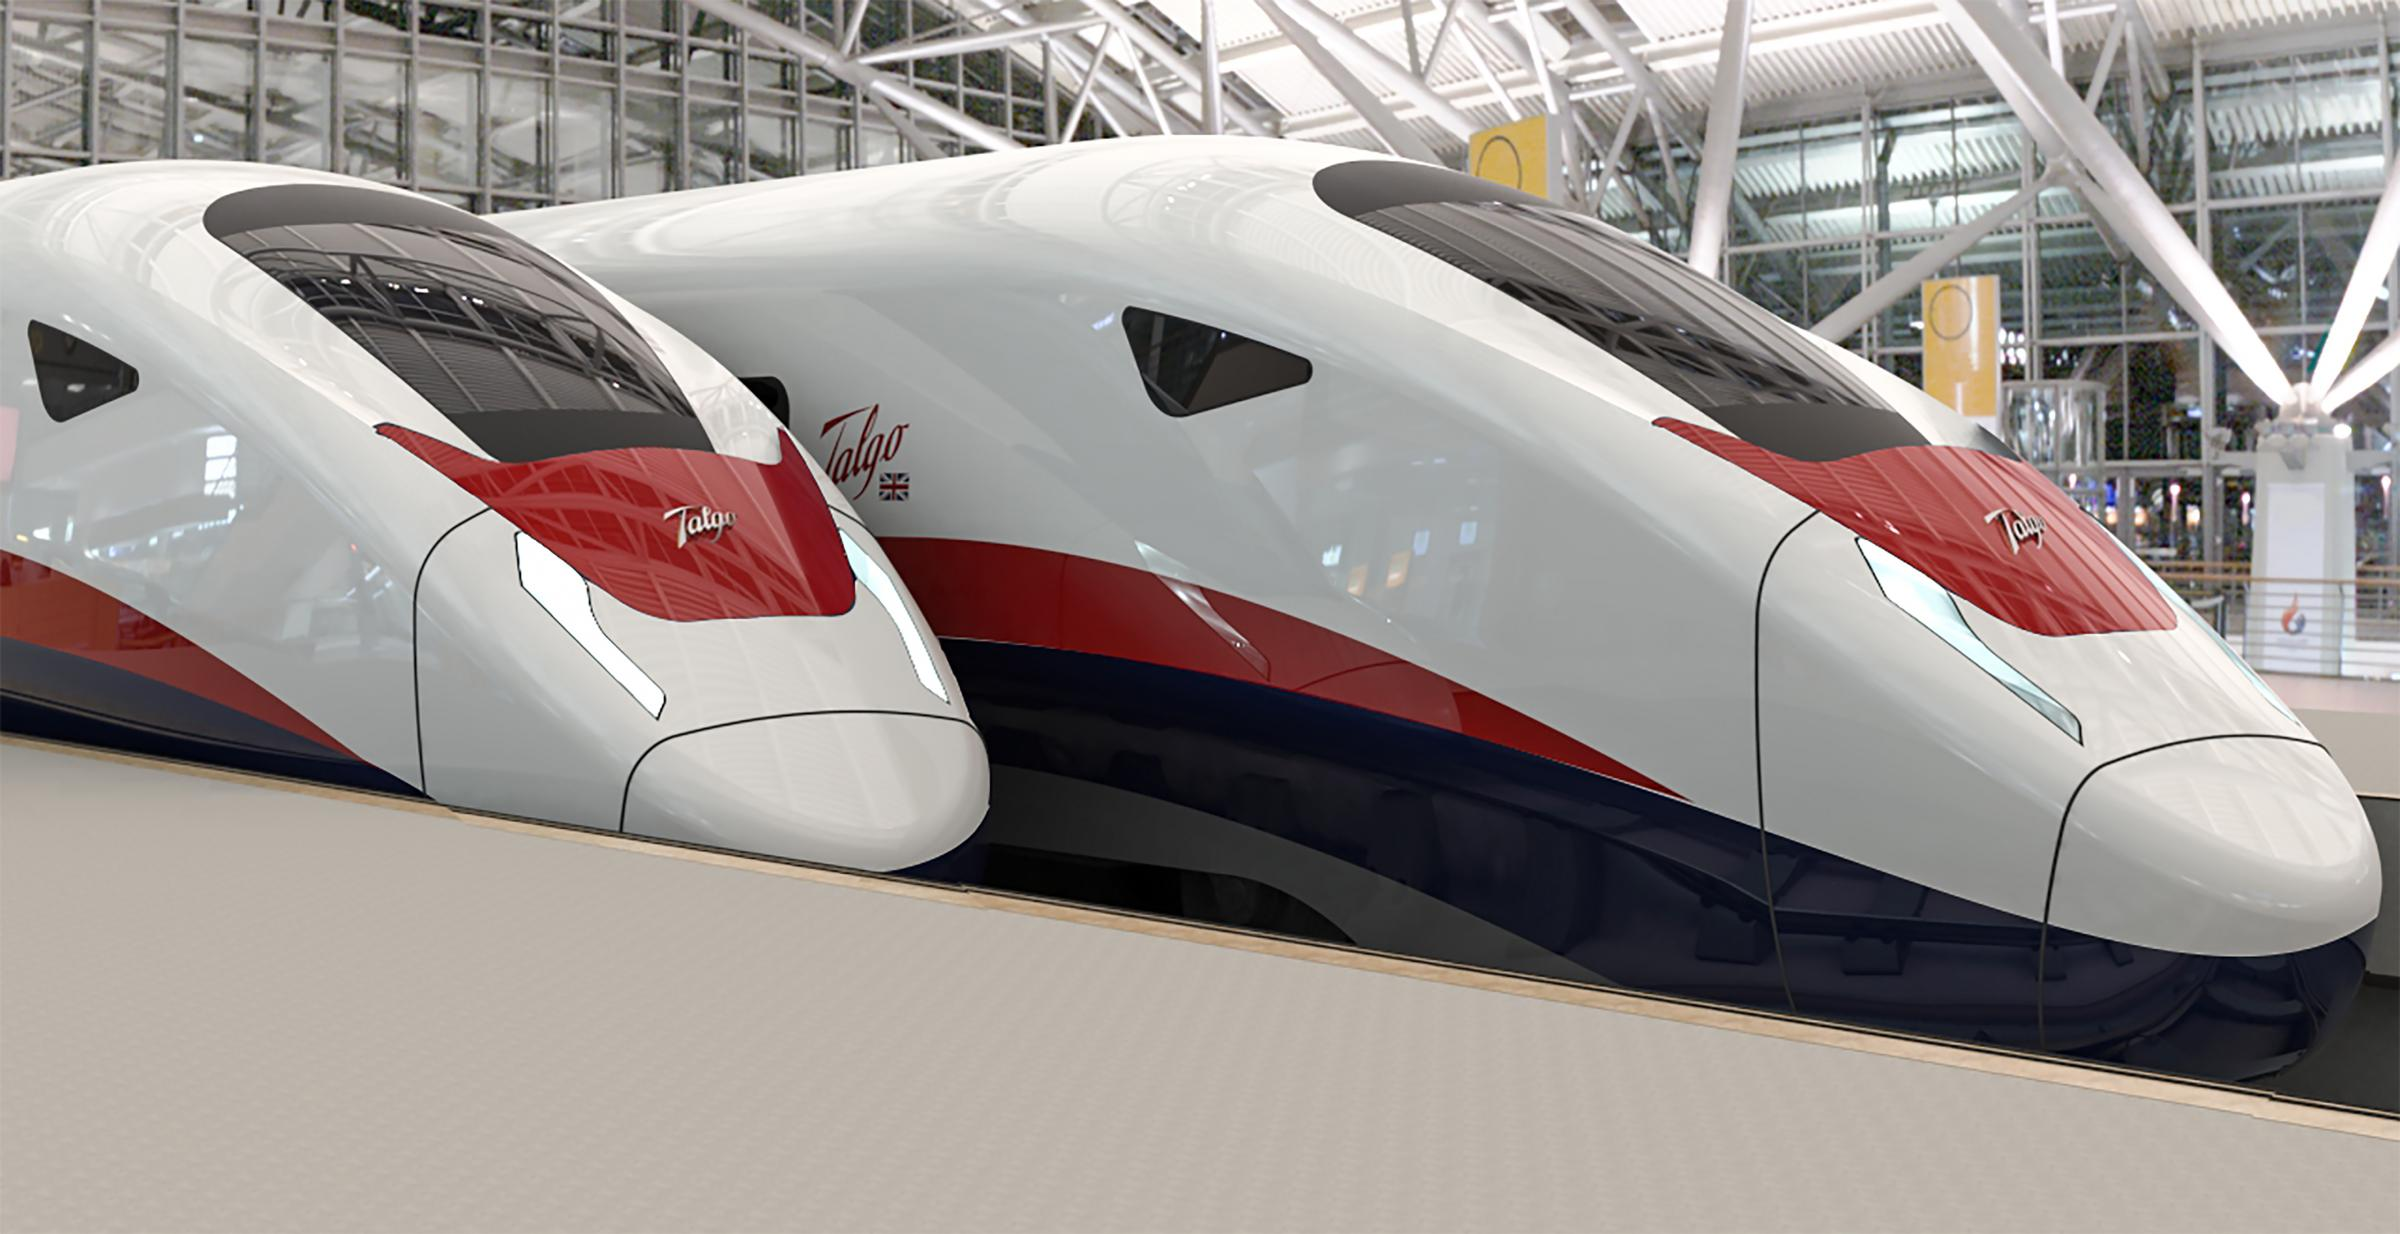 An artist's impression of Talgo's new AVRIL UK train, that could beseen on some of Britain's future High Speed Railway lines